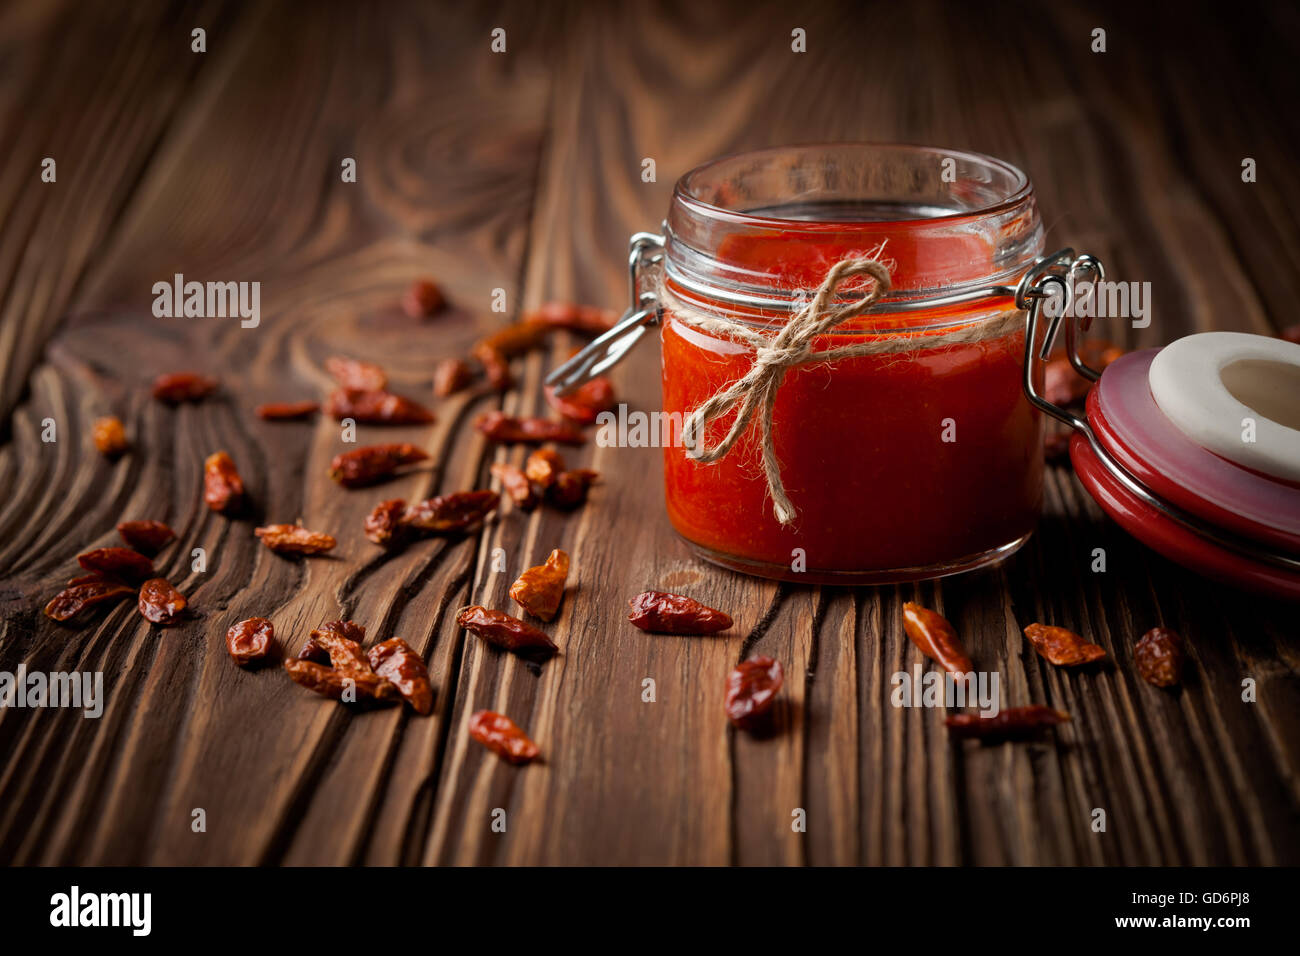 Natural diy chilli sauce sriracha - Stock Image